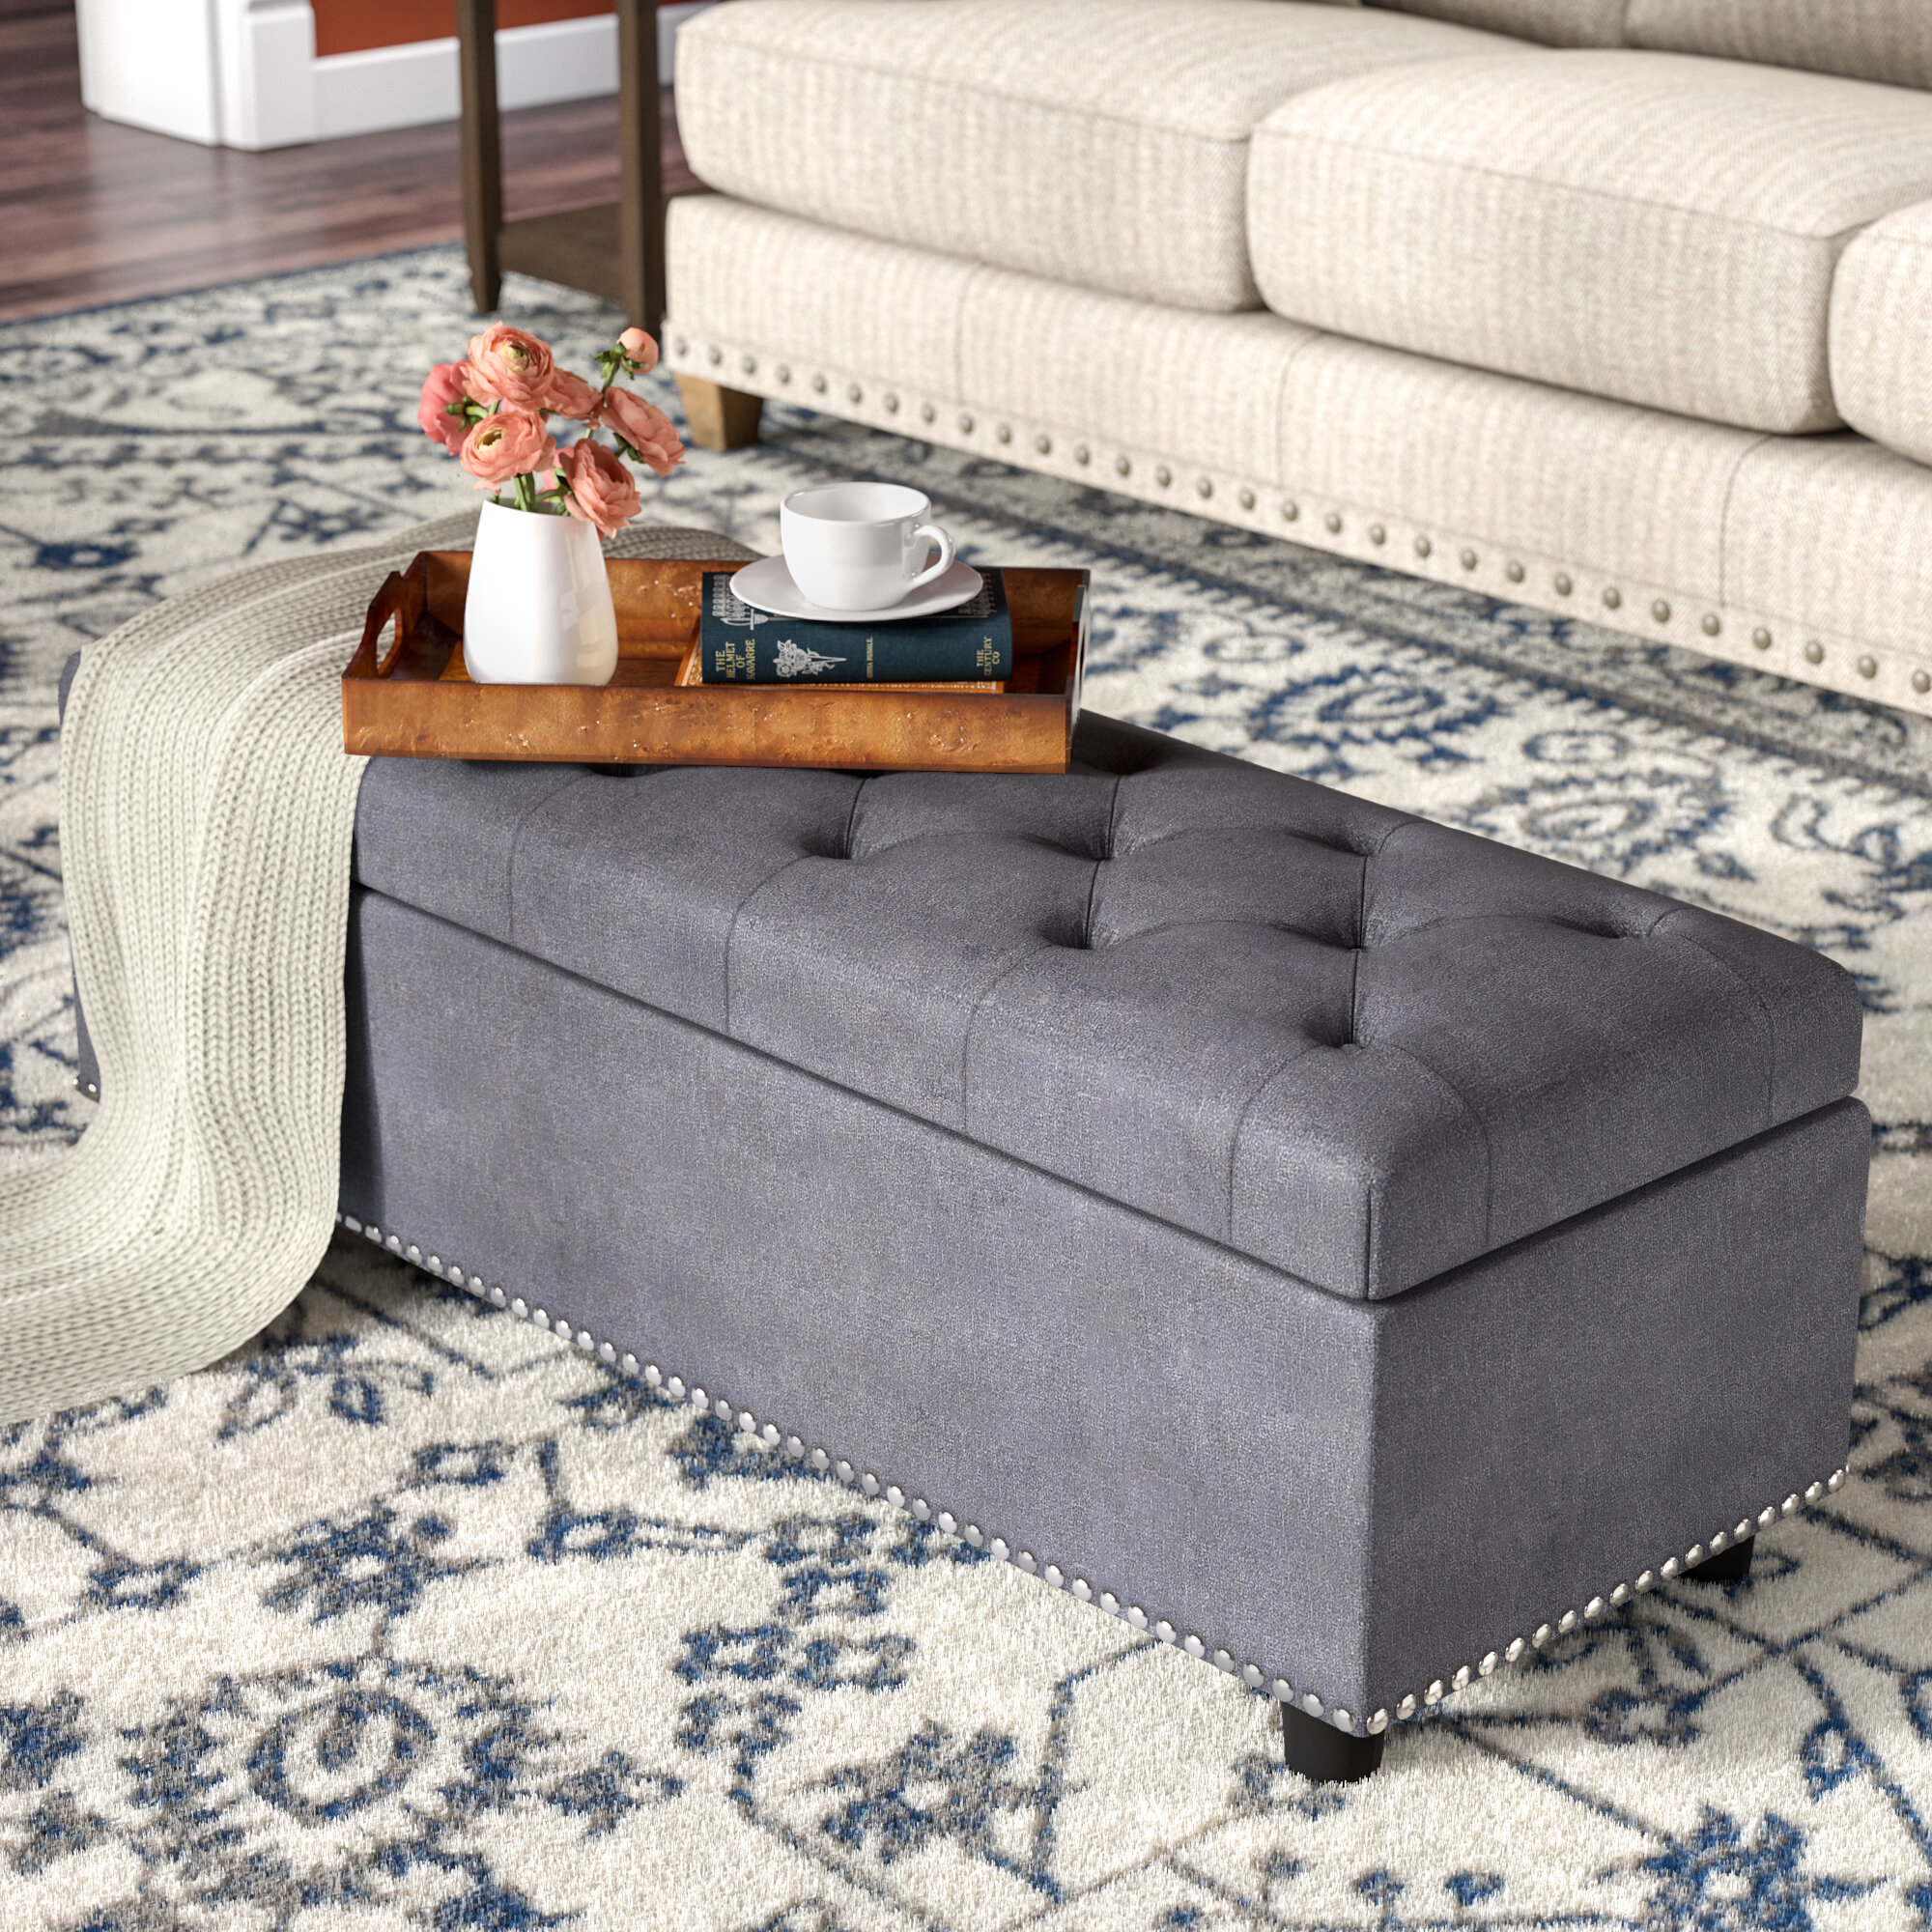 Rectangular Ottoman Coffee Table You Ll Love In 2021 Visualhunt